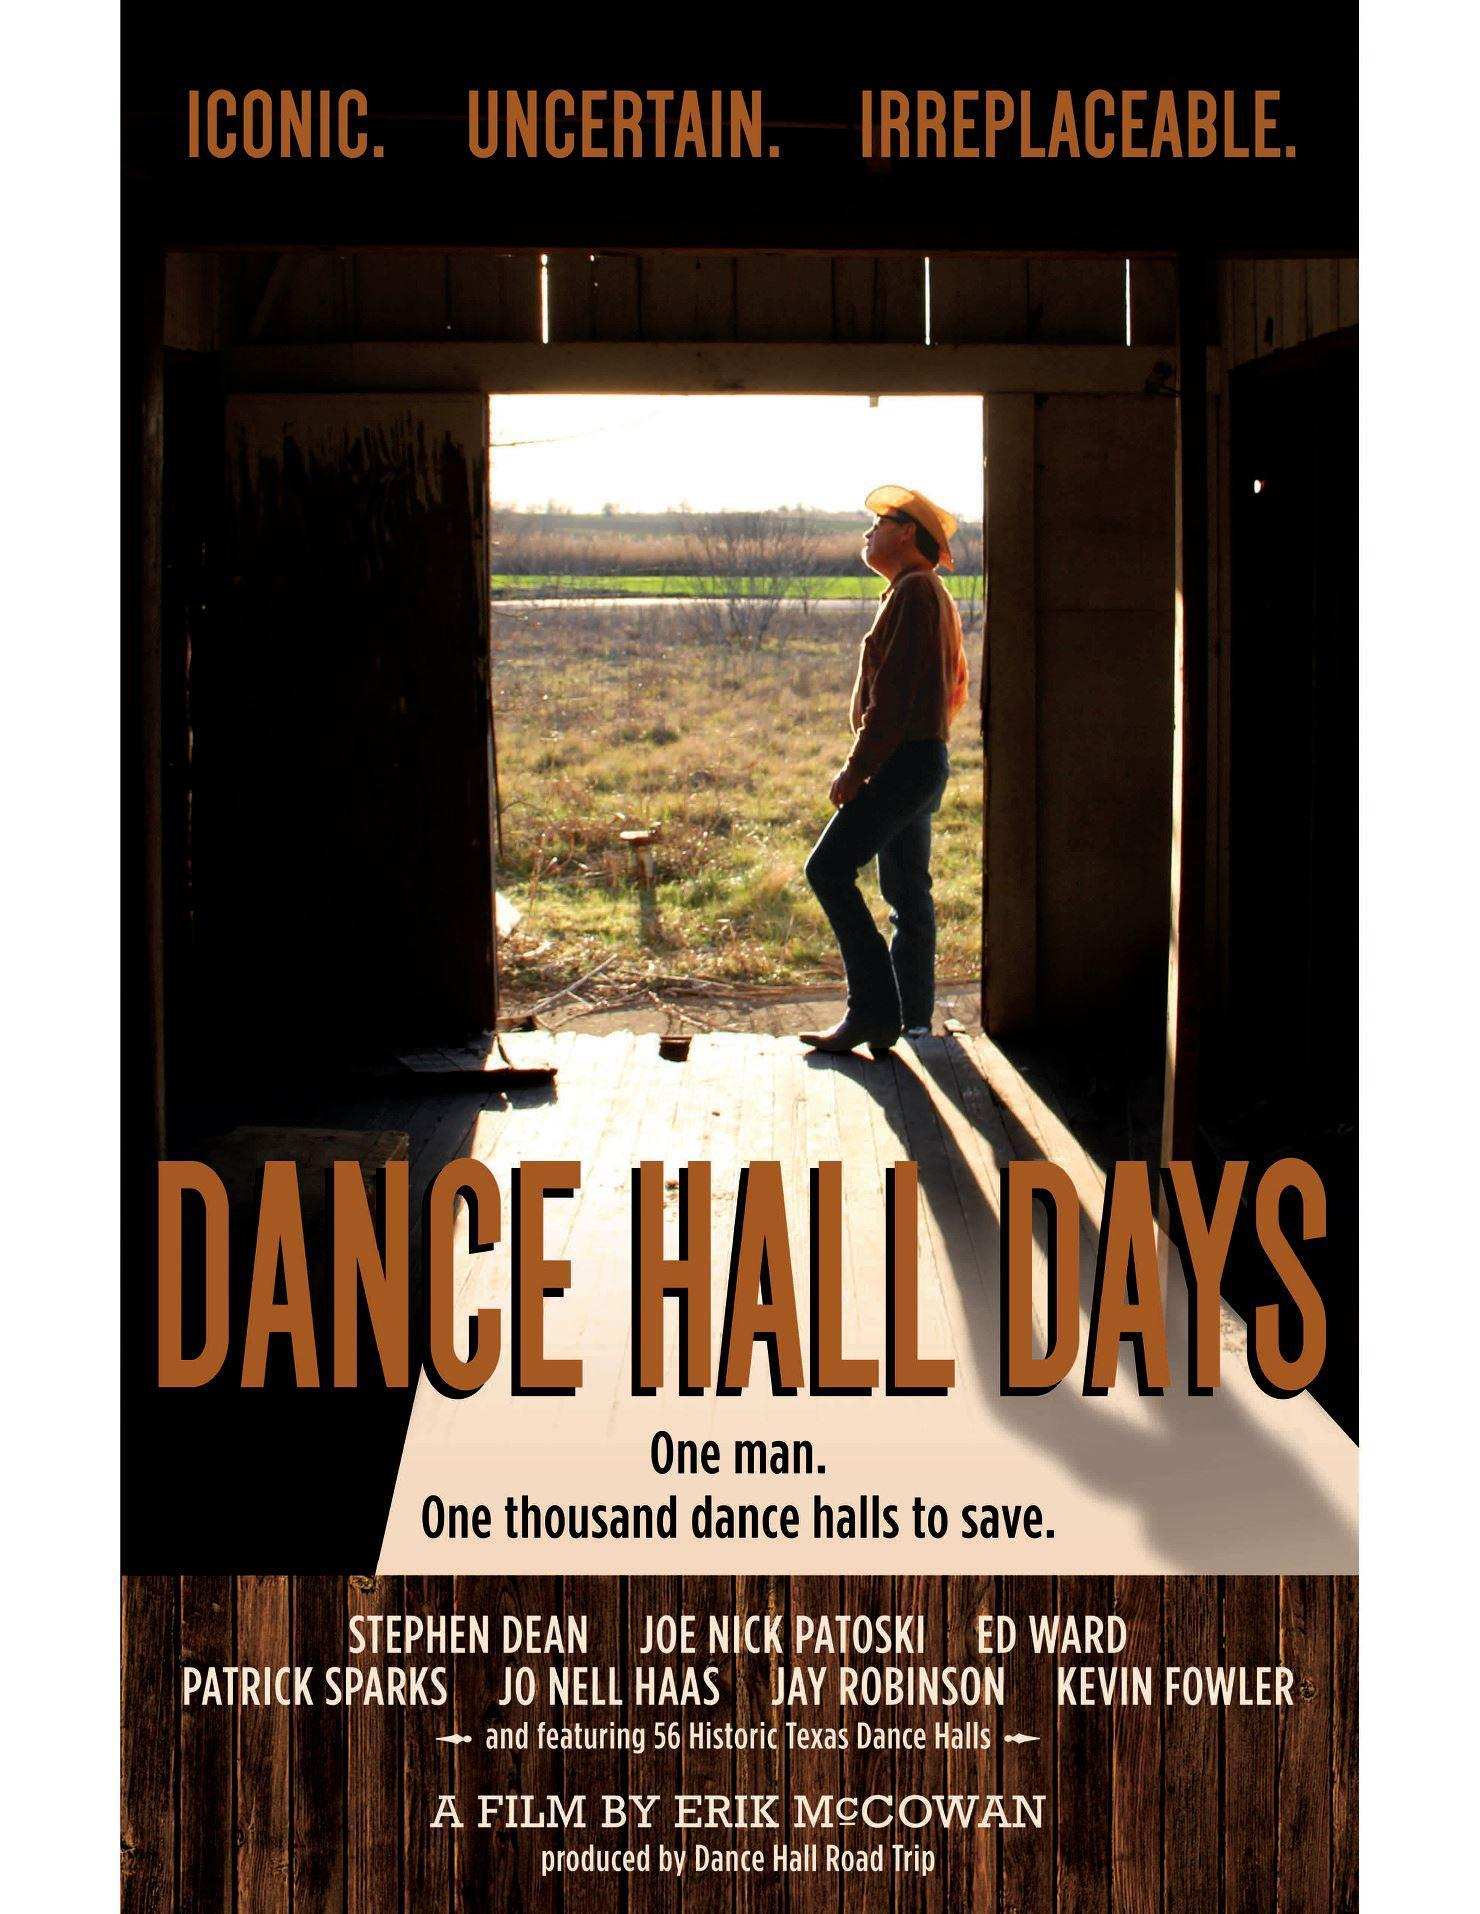 See the film Dance Hall Days at the TCGS program on Jan. 25. Producer Erik McCowan will be on hand to talk about the making of the film and the influence Texas Czechs had on establishing many of the state's dance halls. Theresa Cernoch Parker and Gary E.